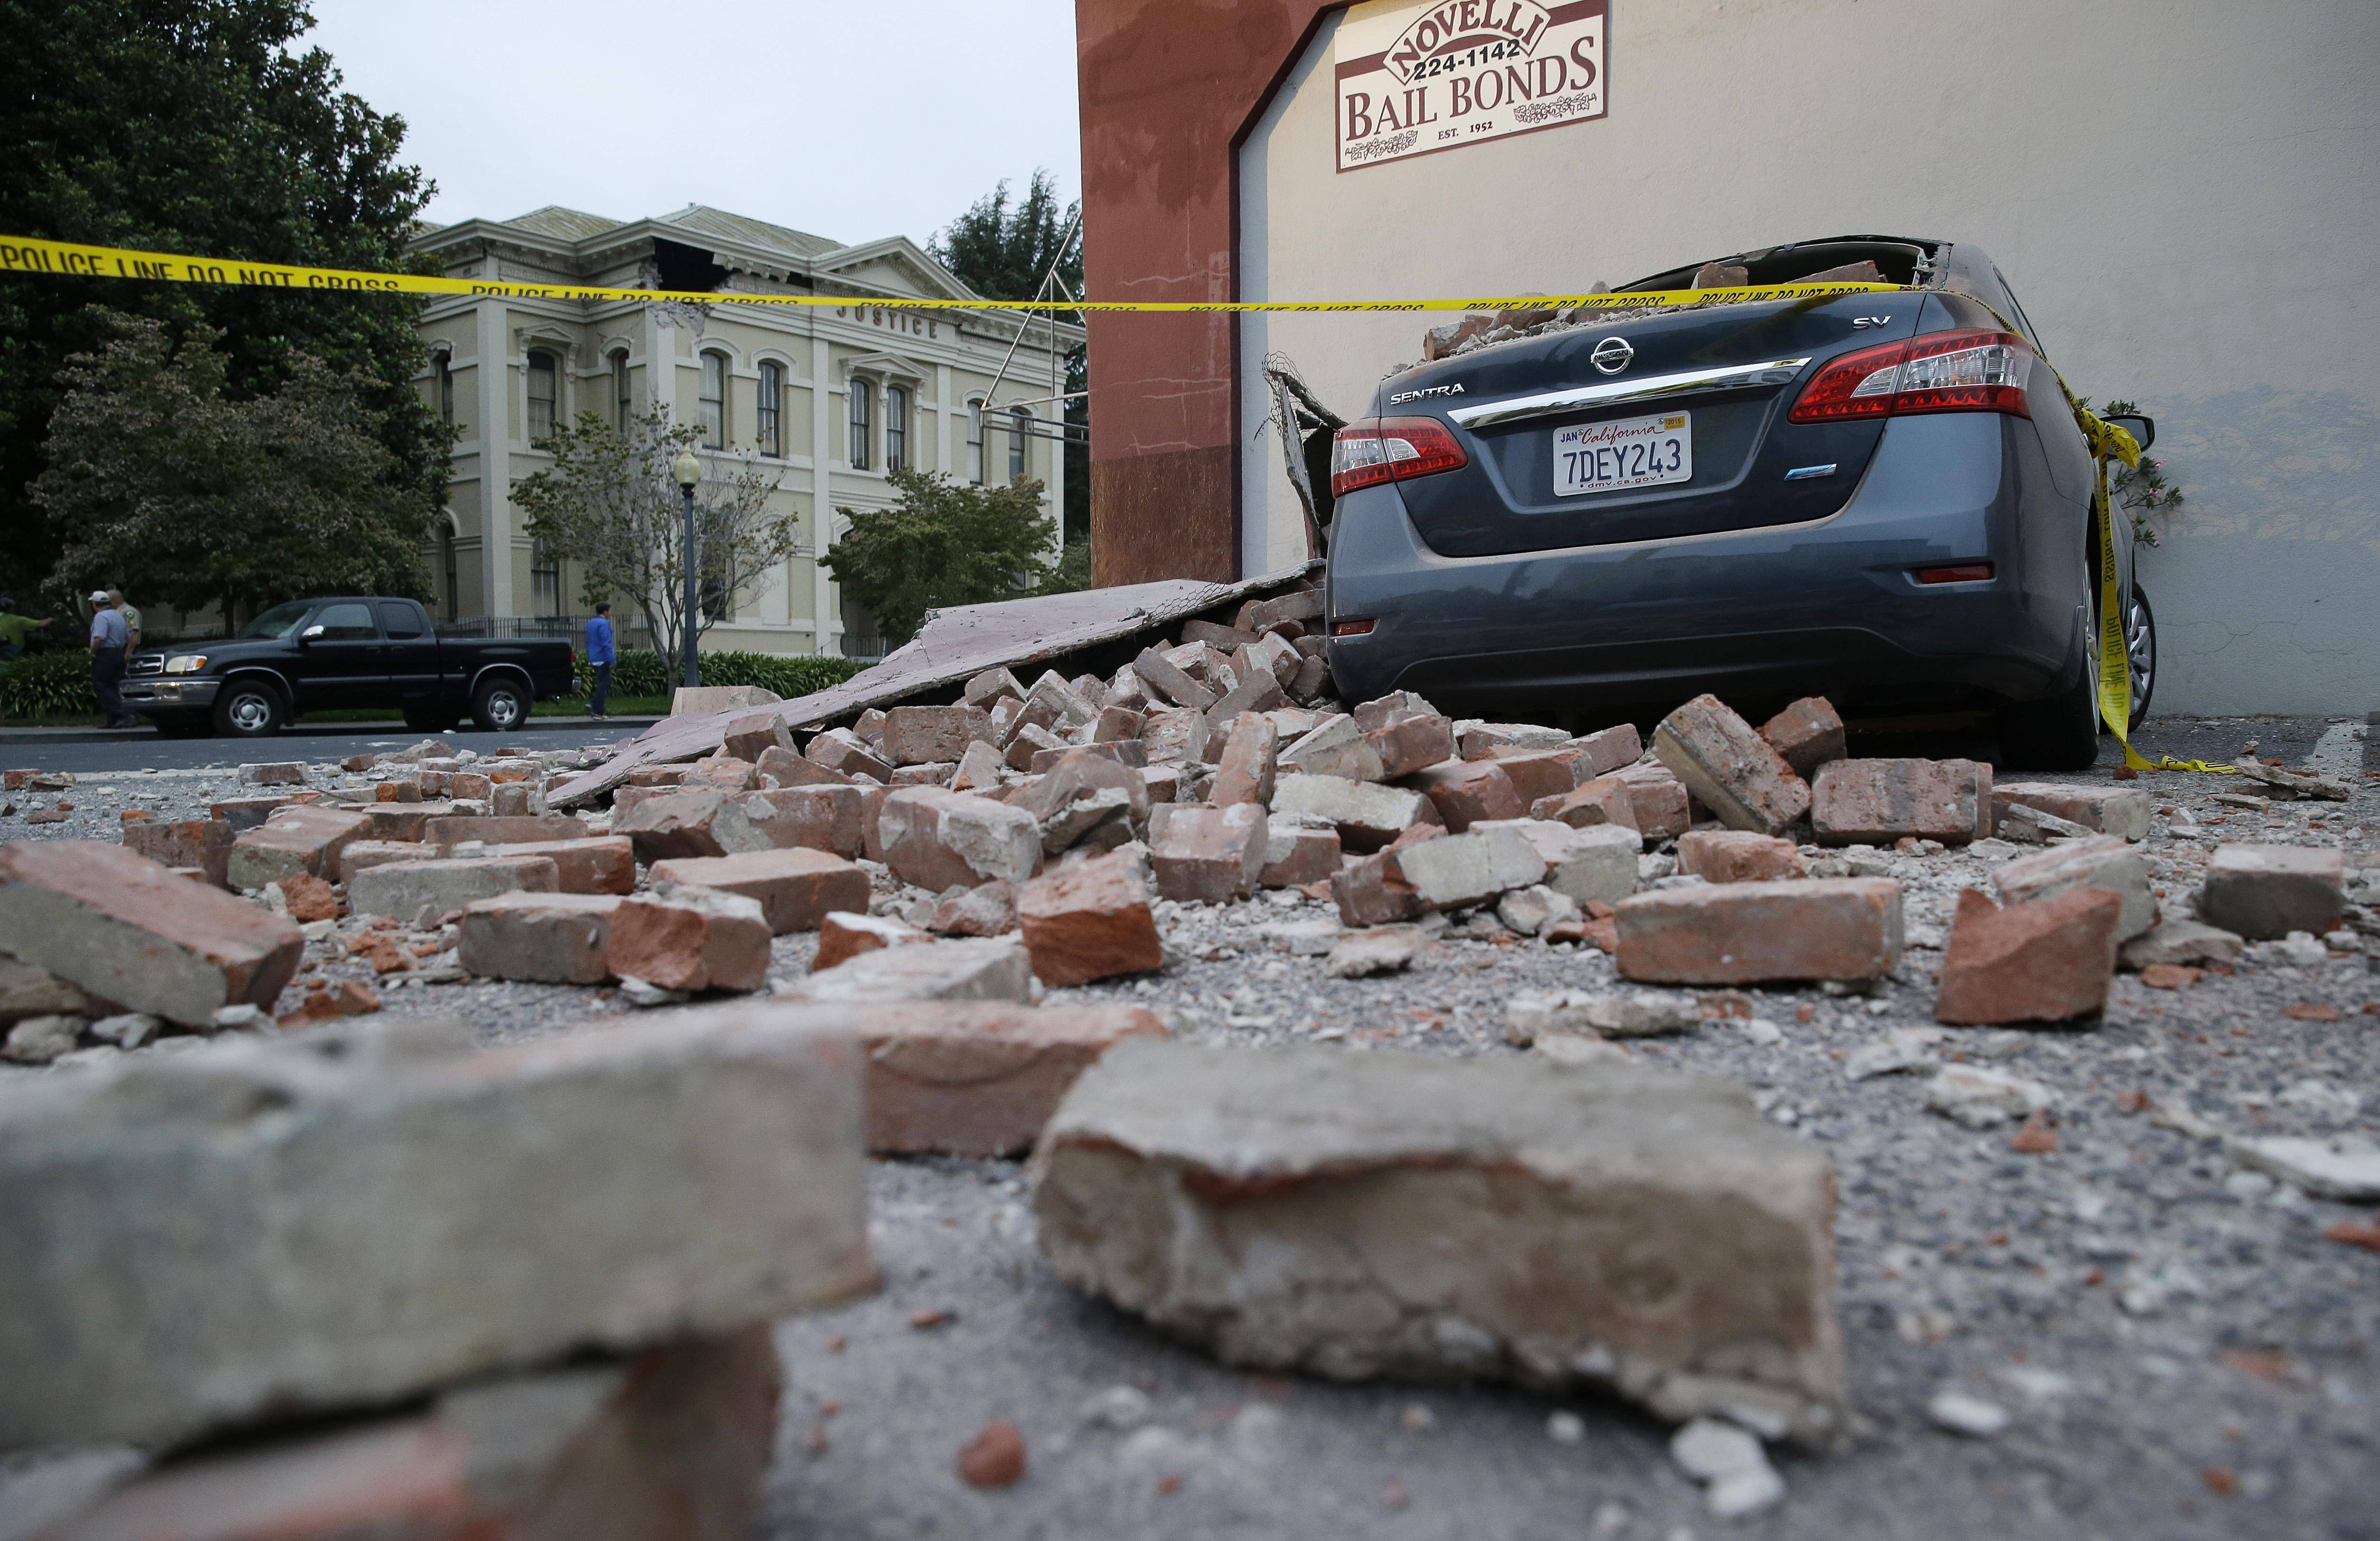 Bricks are in the street after a building was damaged during an earthquake in Napa, Calif., Sunday. A large earthquake rolled through California's northern Bay Area early Sunday, damaging some buildings, knocking out power to thousands and sending residents running out of their homes in the darkness.